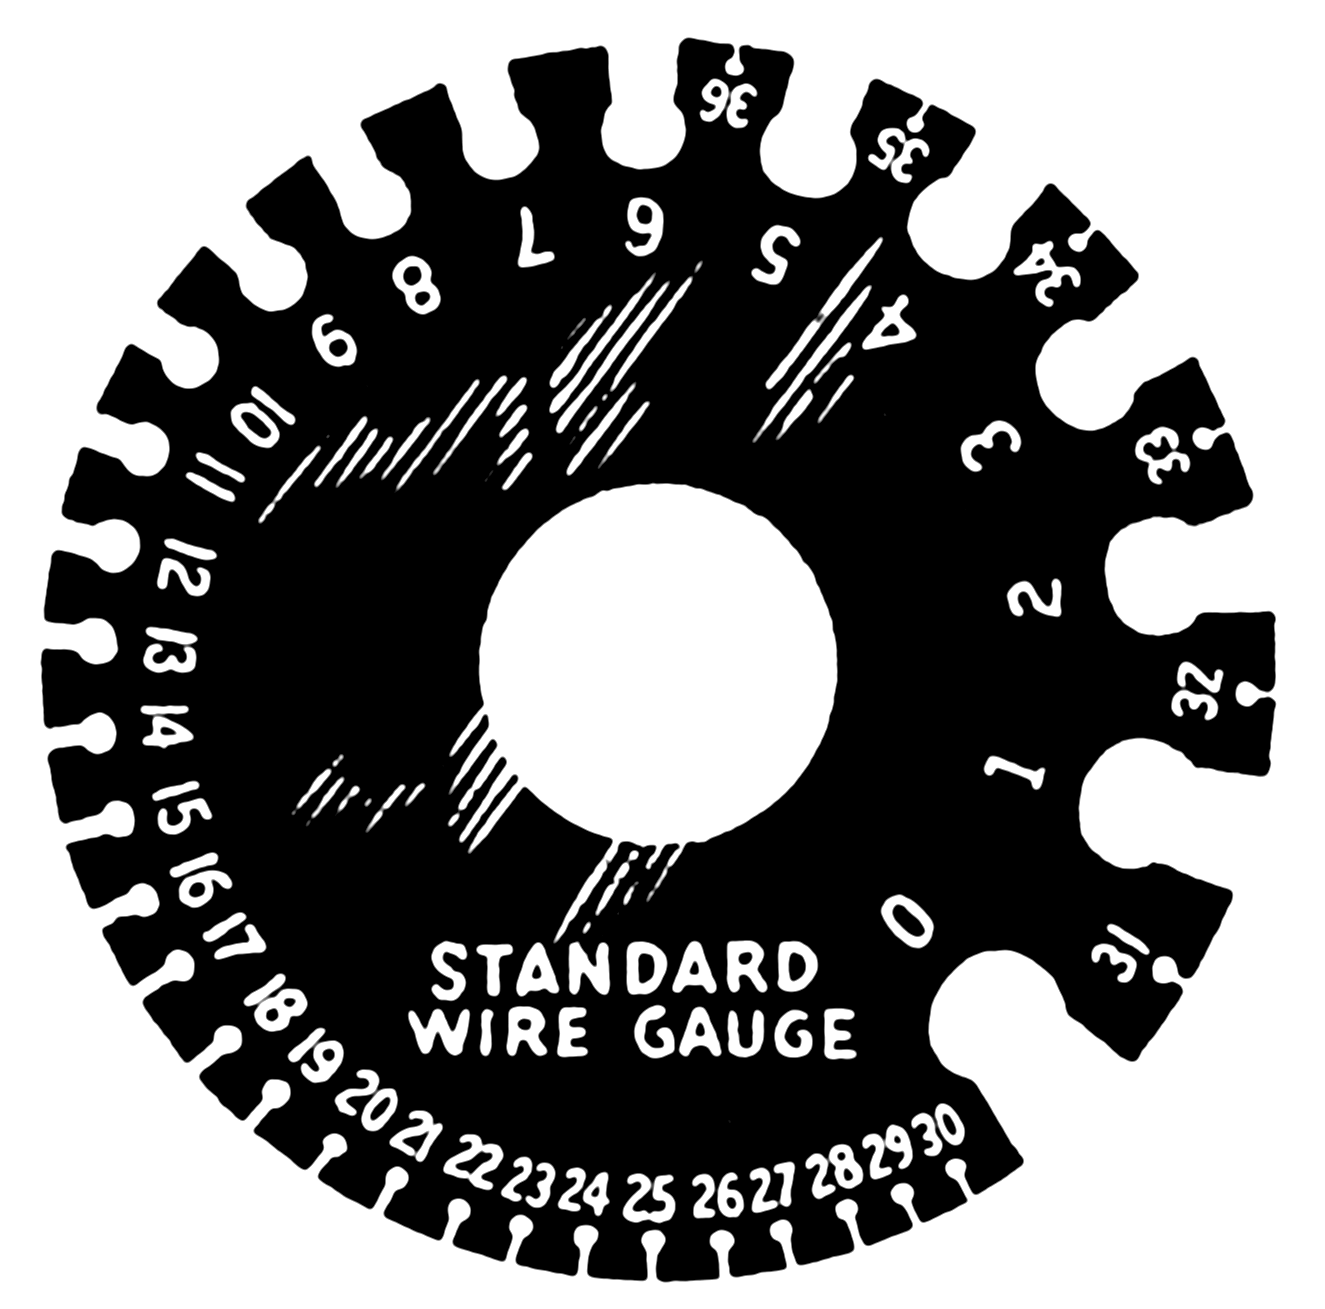 Marine wire and cable marine wire size calculation how to calculate the correct marine wire size greentooth Gallery